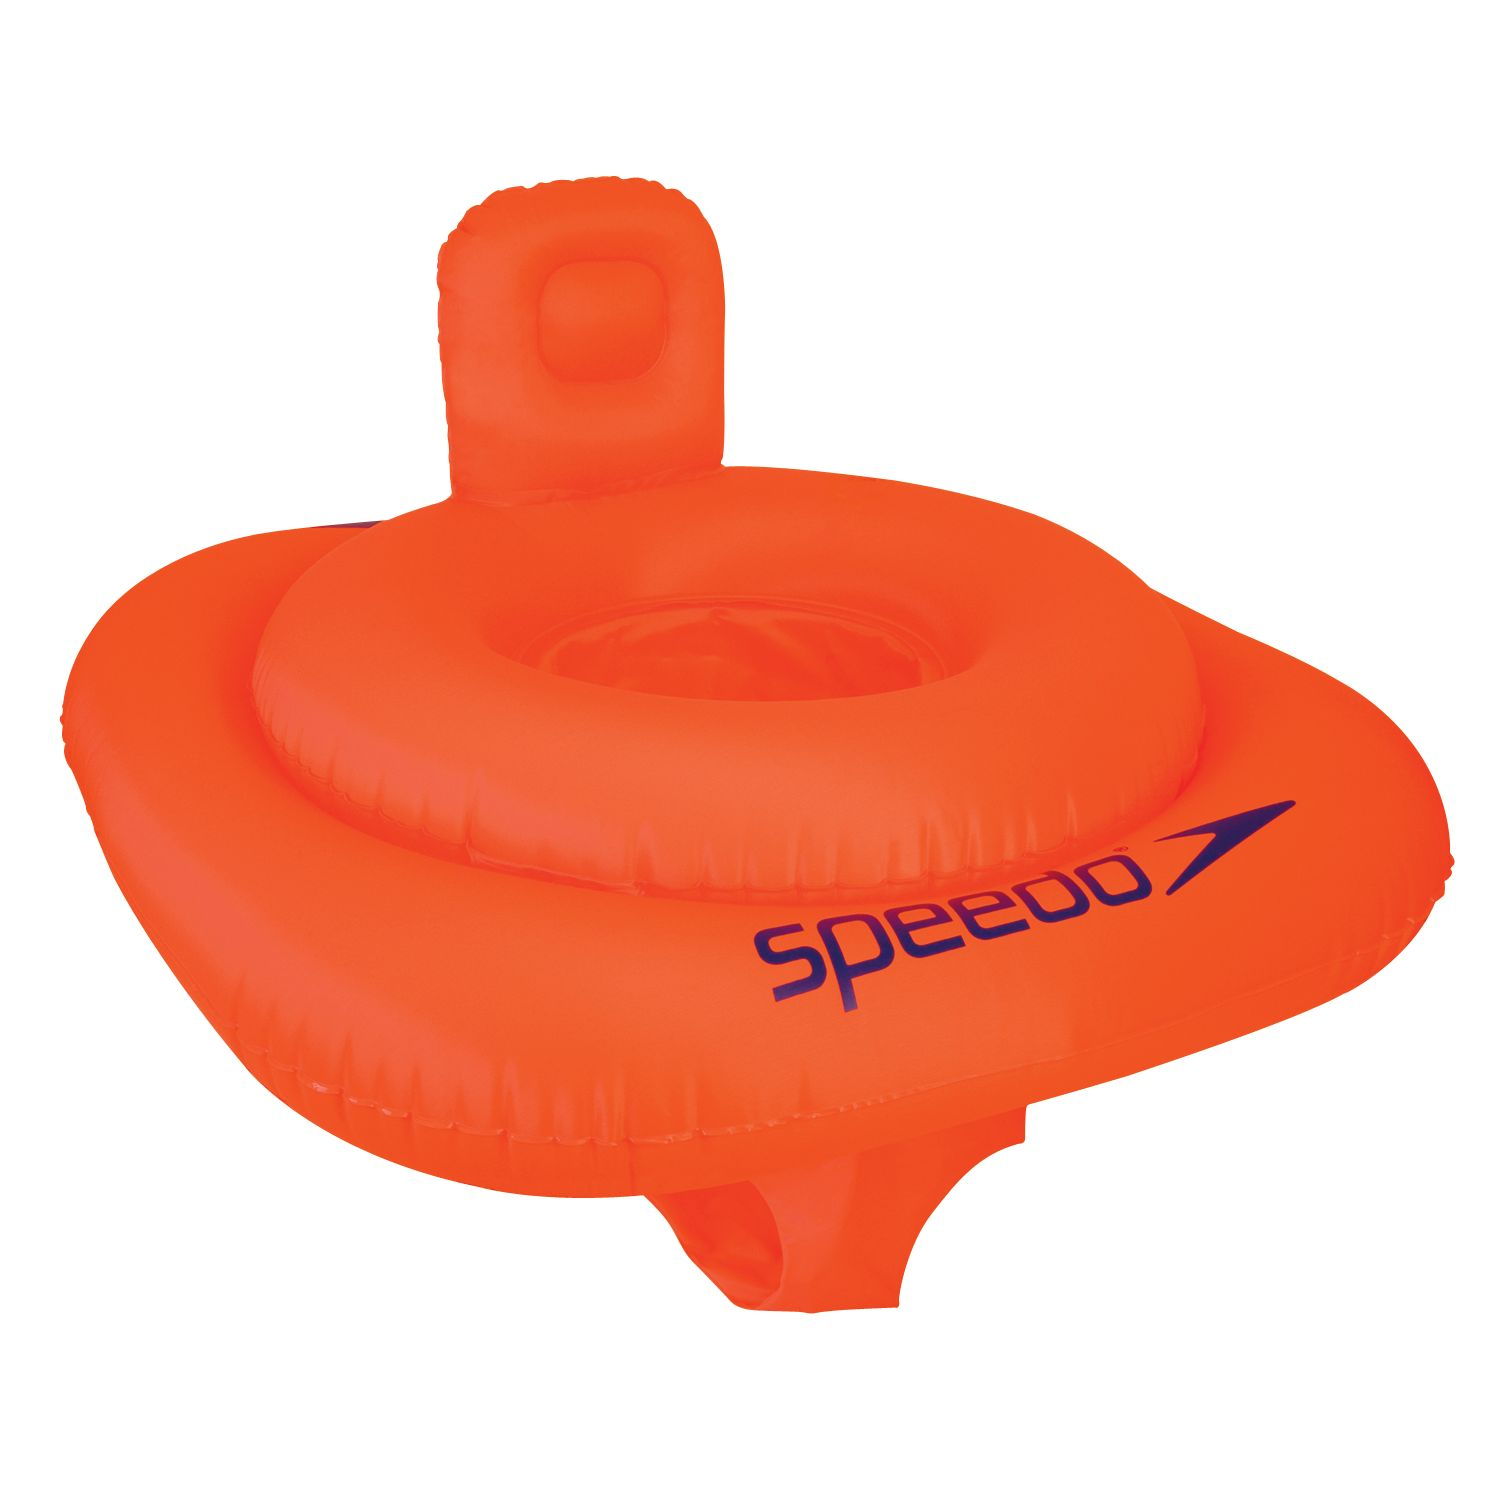 Speedo Swim Seat, 0–12 months, Orange